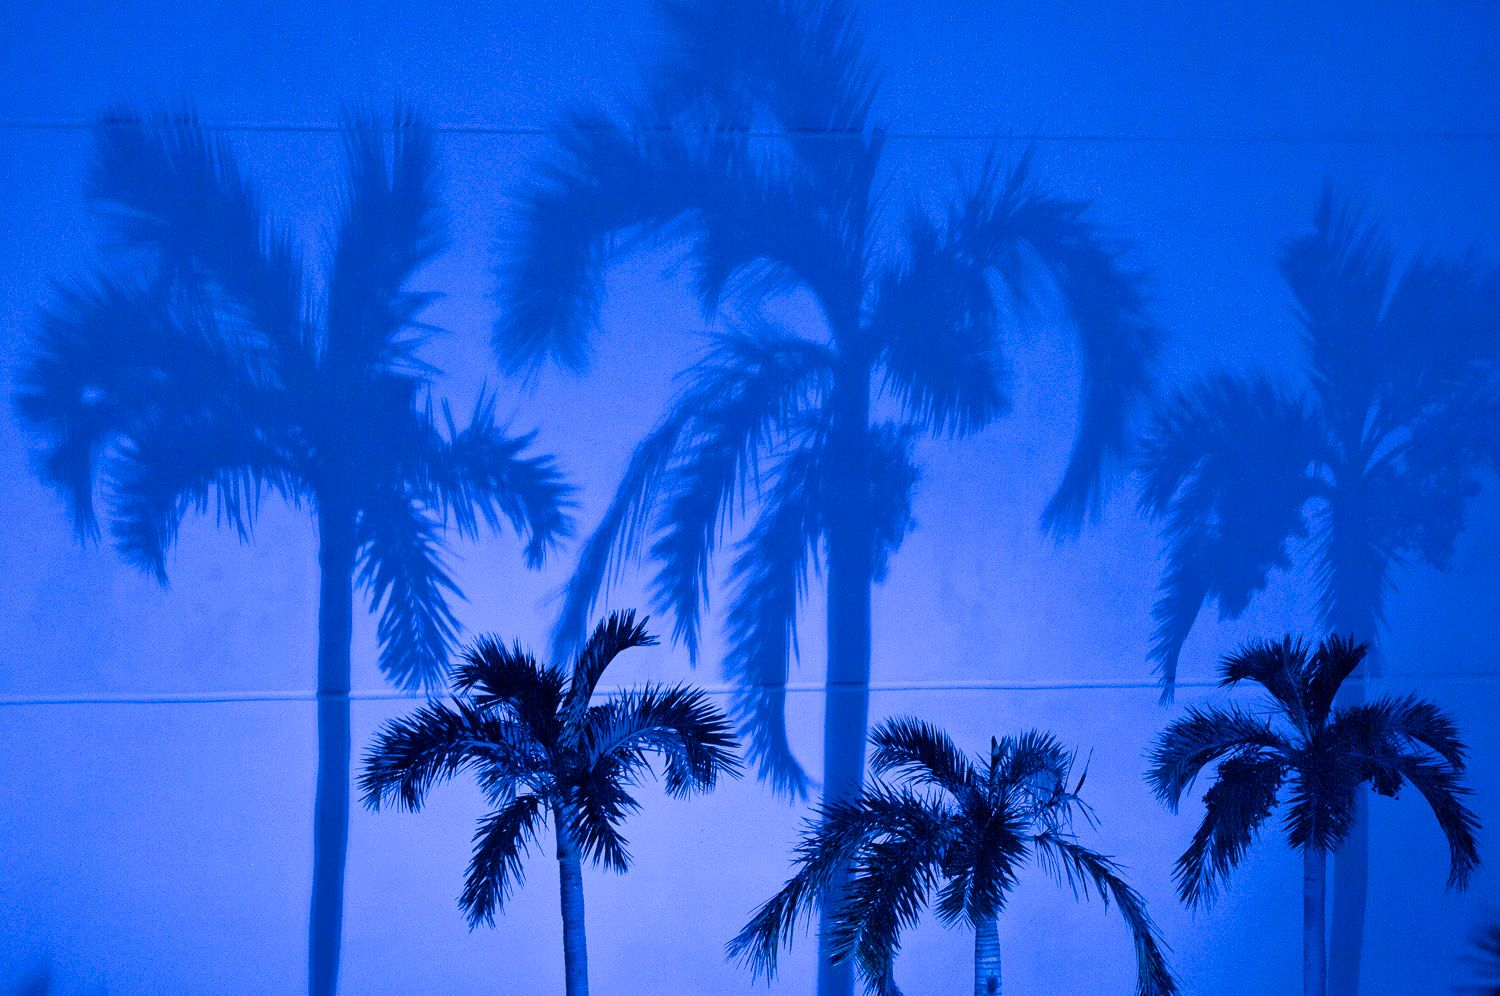 Blue Shadows of Palm Trees against wall